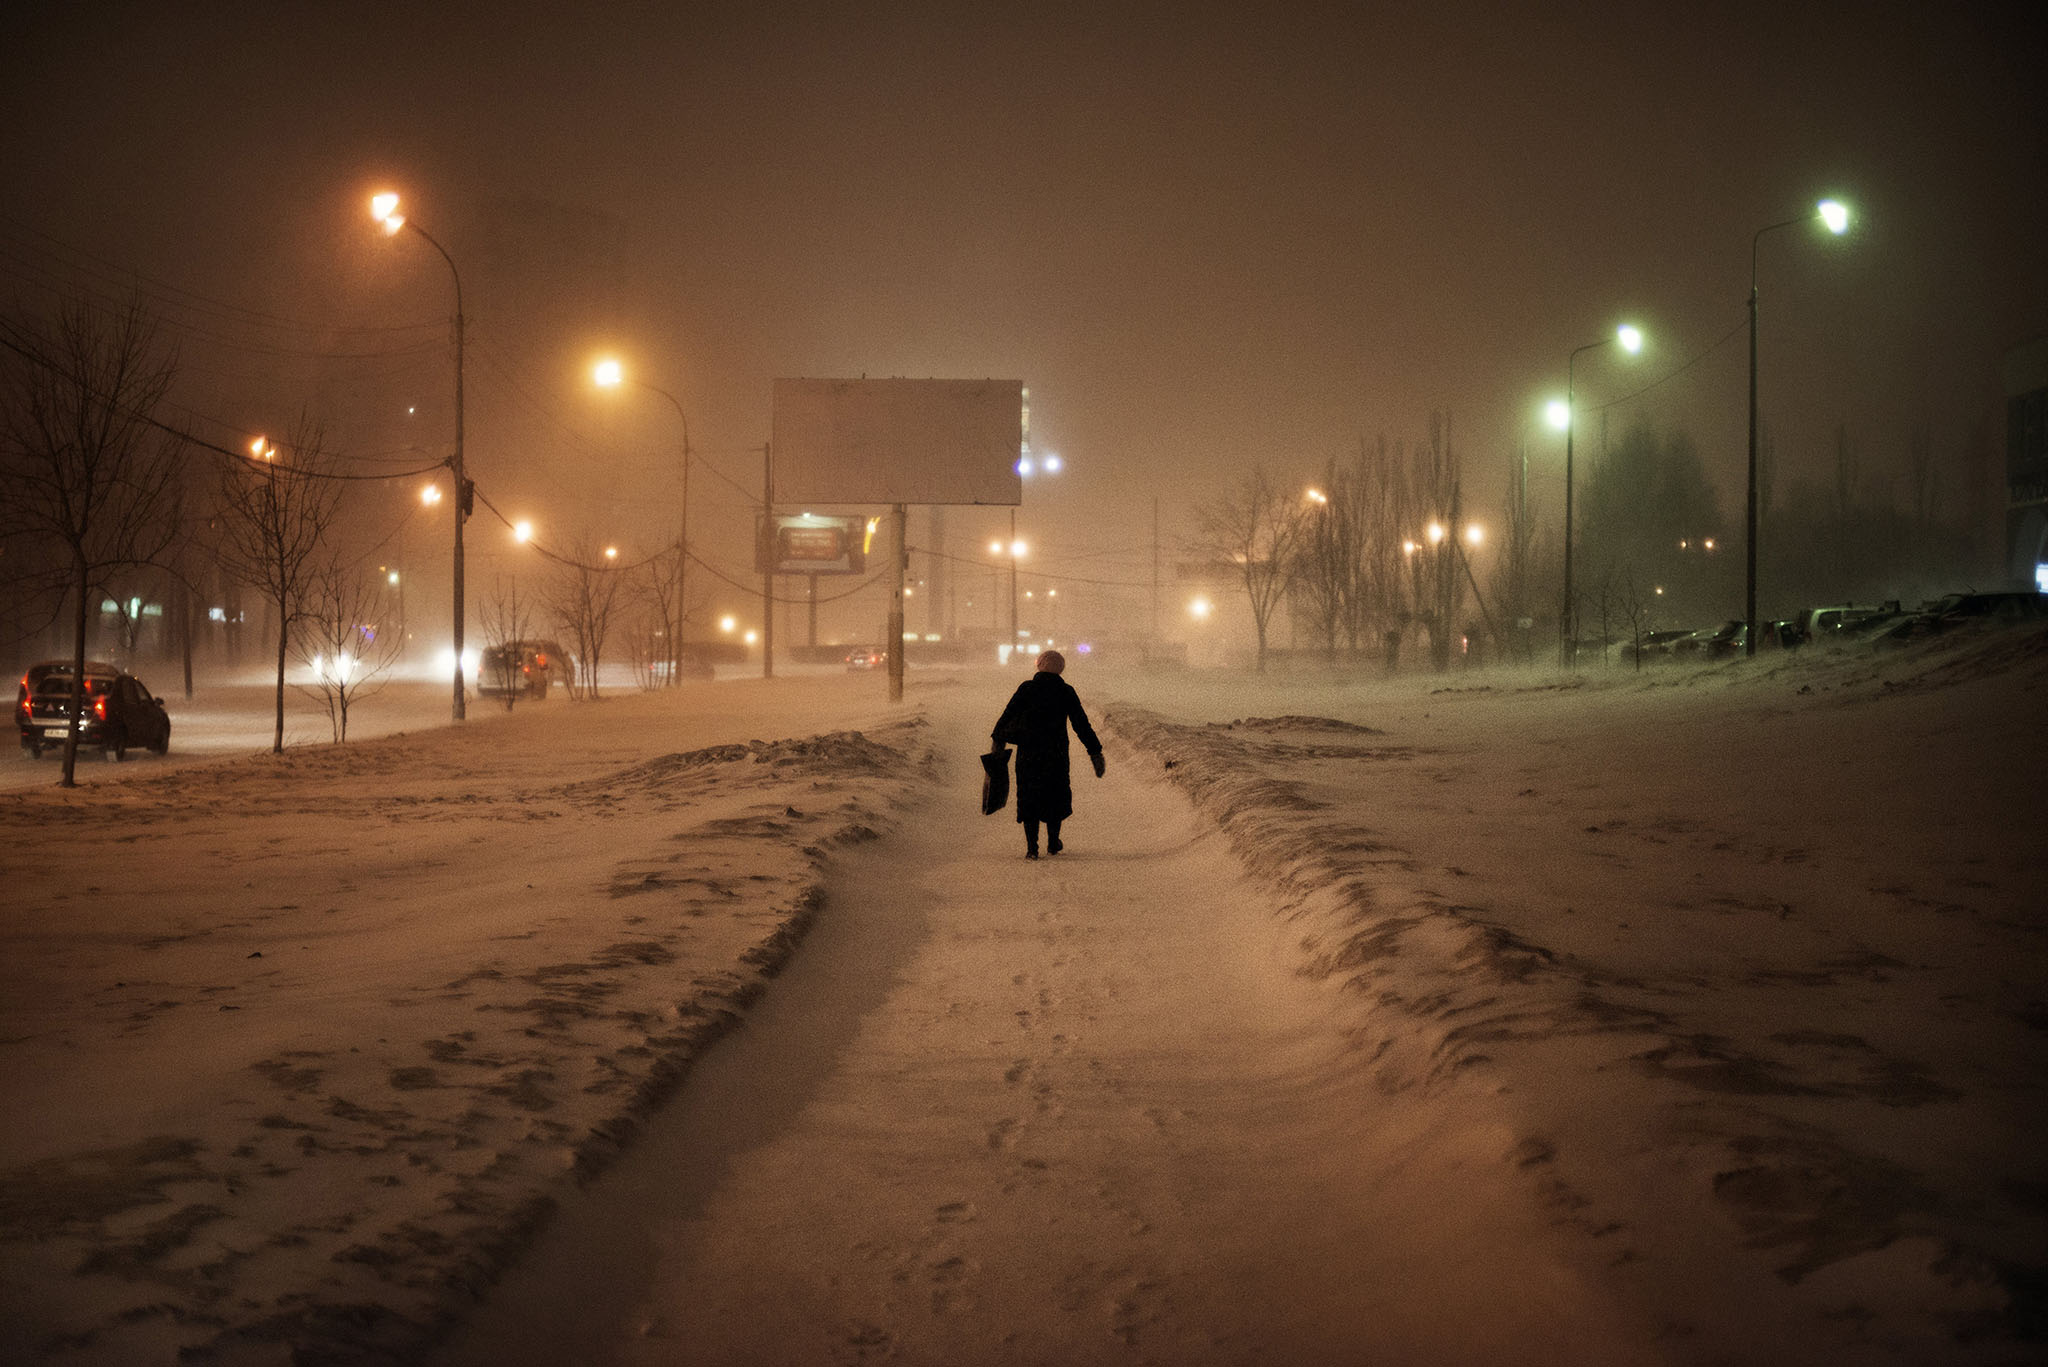 March 2013 - A woman walks on a street in the outskirts of Yekaterinburg.